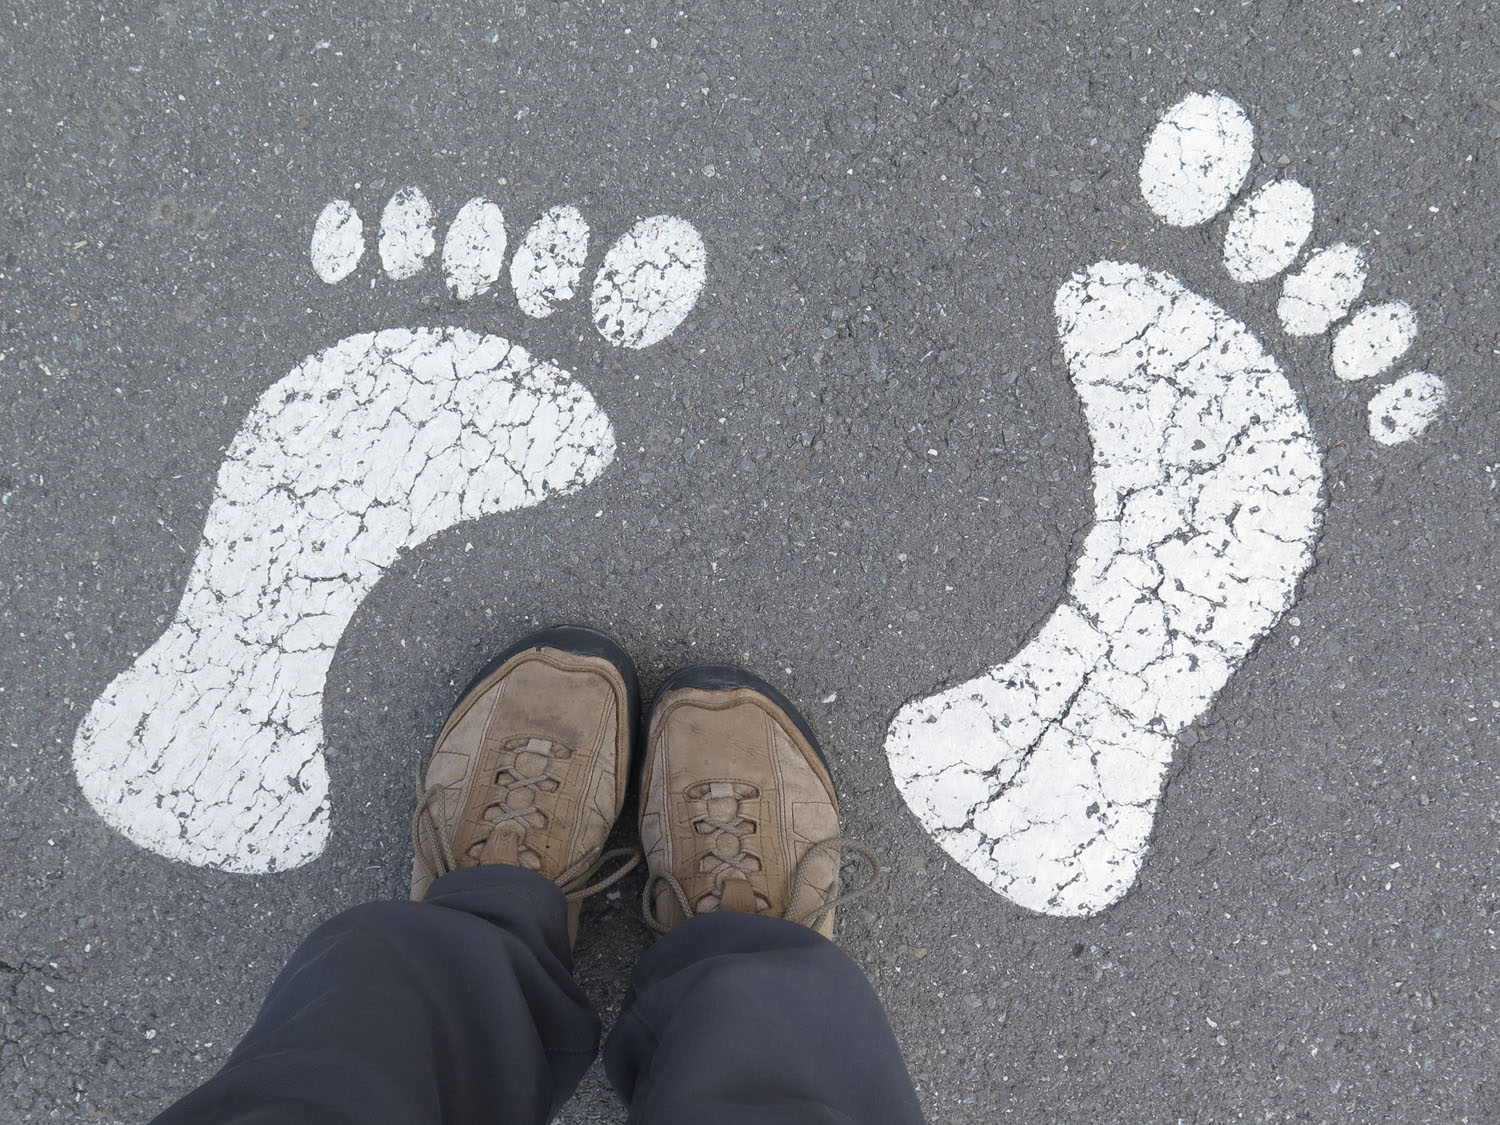 Switzerland-Bernese-Oberland-Murren-Footprints